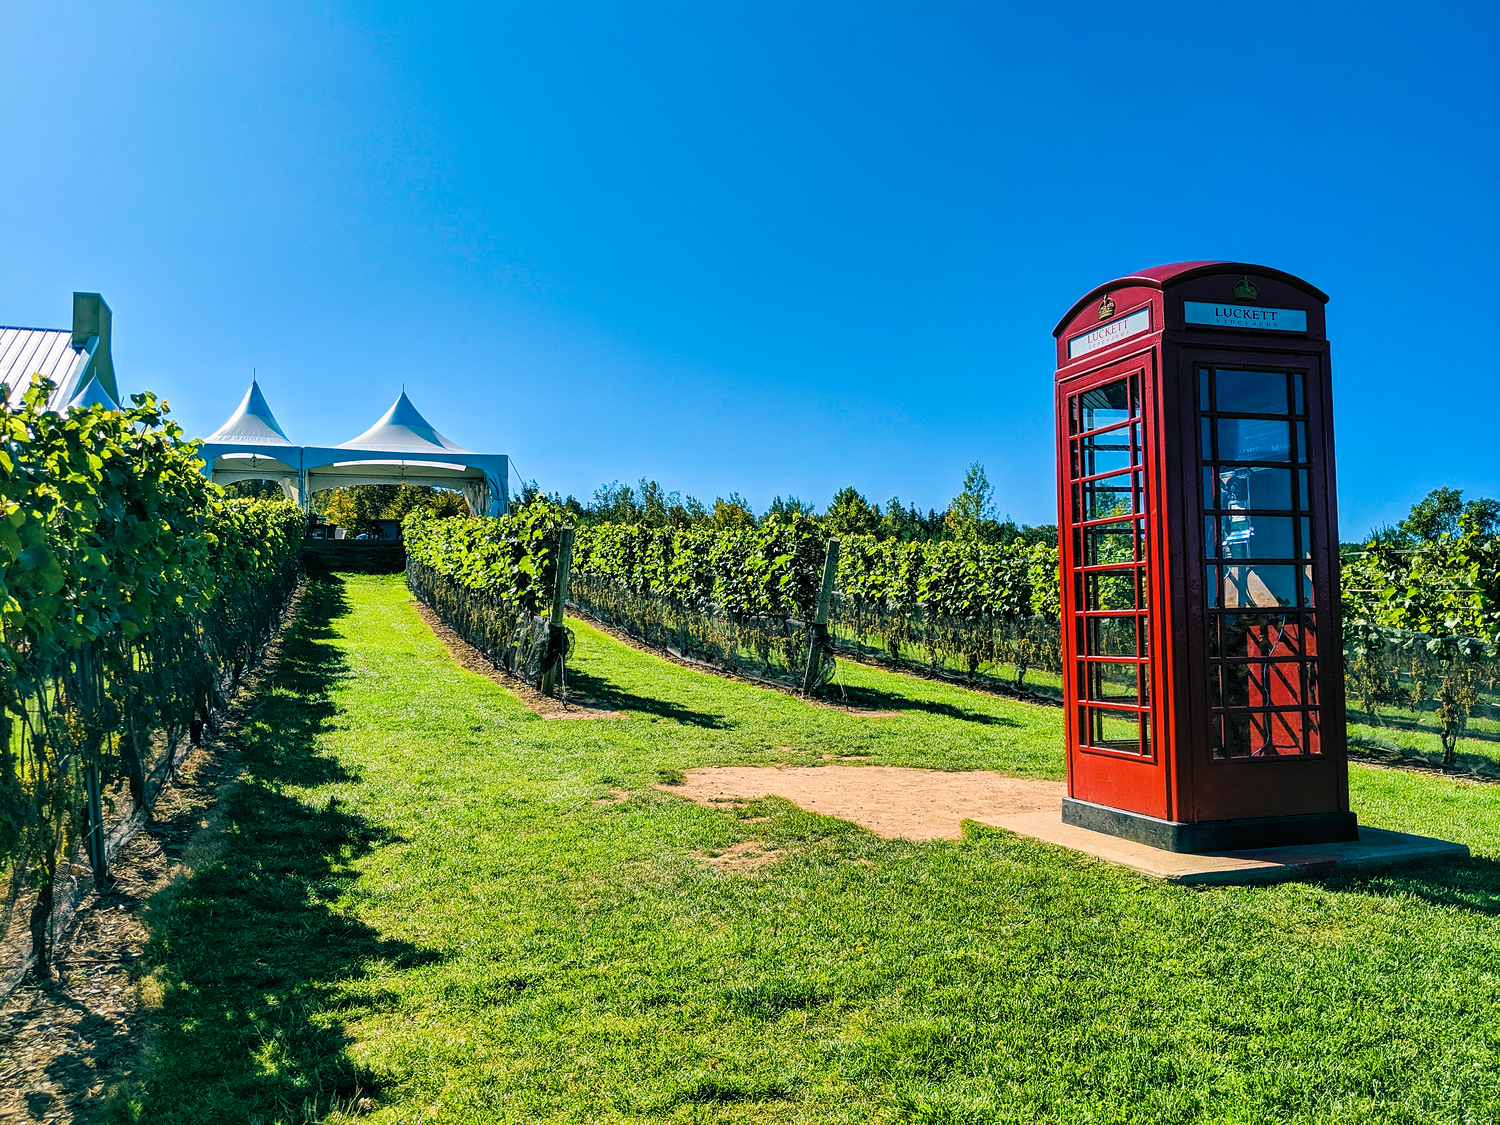 British red phone box at Pete Luckett Vineyards in Nova Scotia.